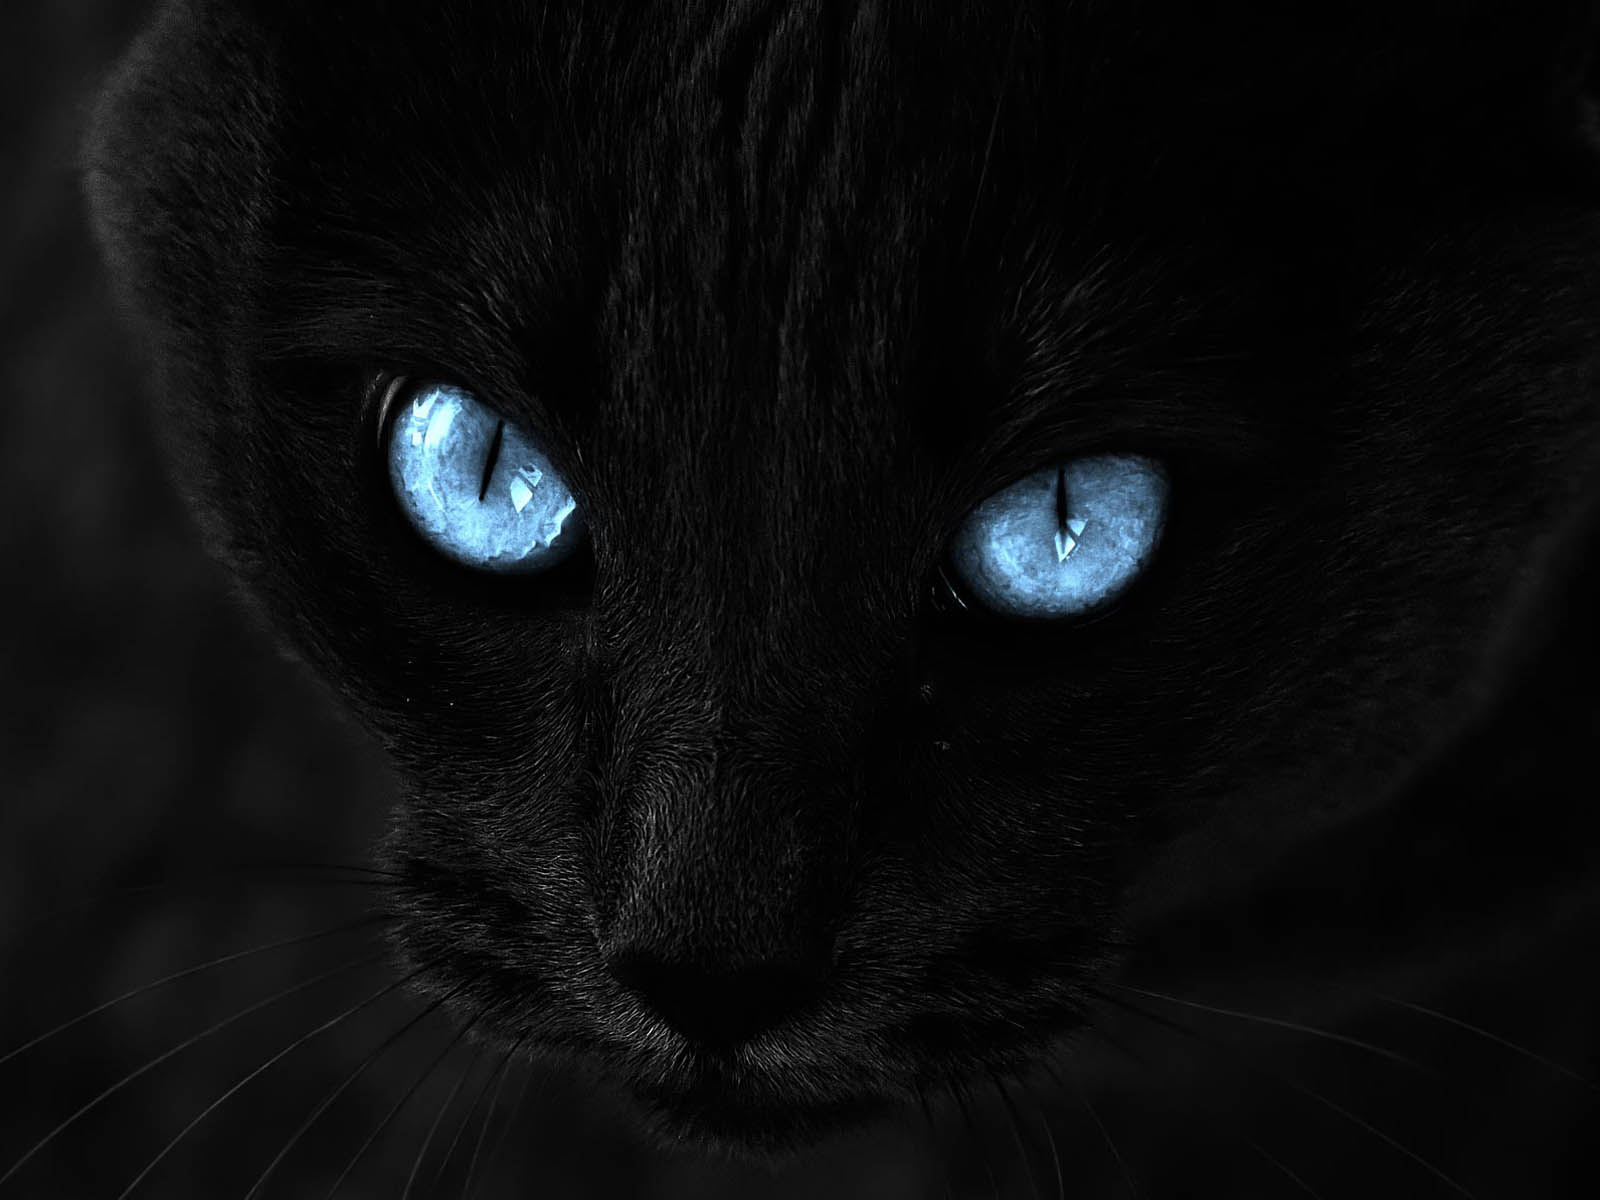 Black-Cat-With-Blue-Eyes-HD-Wallpaper-Desktop.jpg